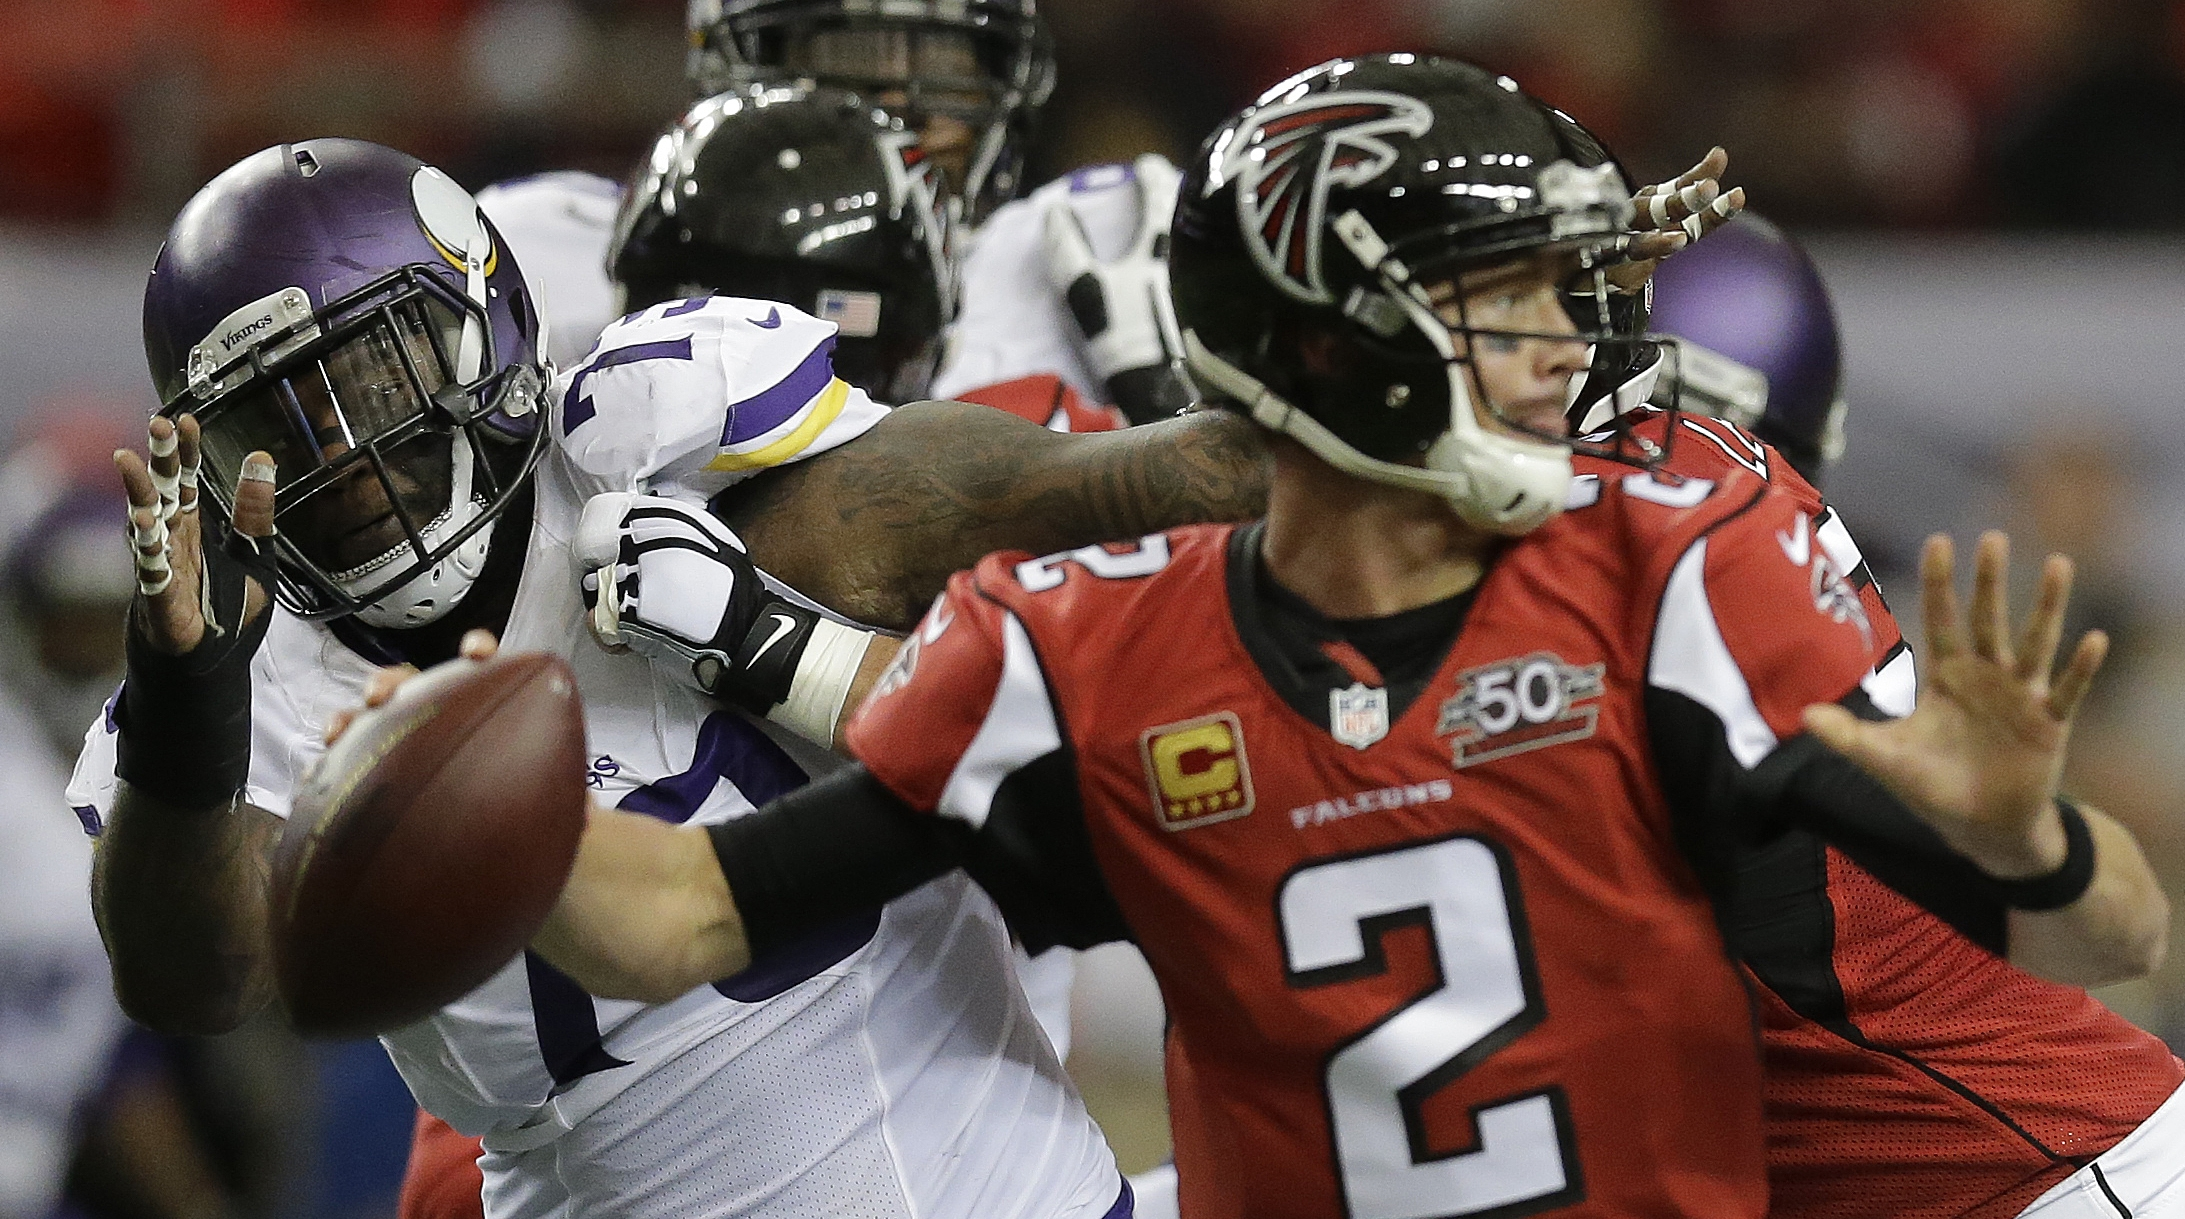 Minnesota Vikings defensive tackle Sharrif Floyd (73) keeps his eye on the ball as Atlanta Falcons quarterback Matt Ryan (2) passes during the first half of an NFL football game, Sunday, Nov. 29, 2015, in Atlanta. (AP Photo/David Goldman)